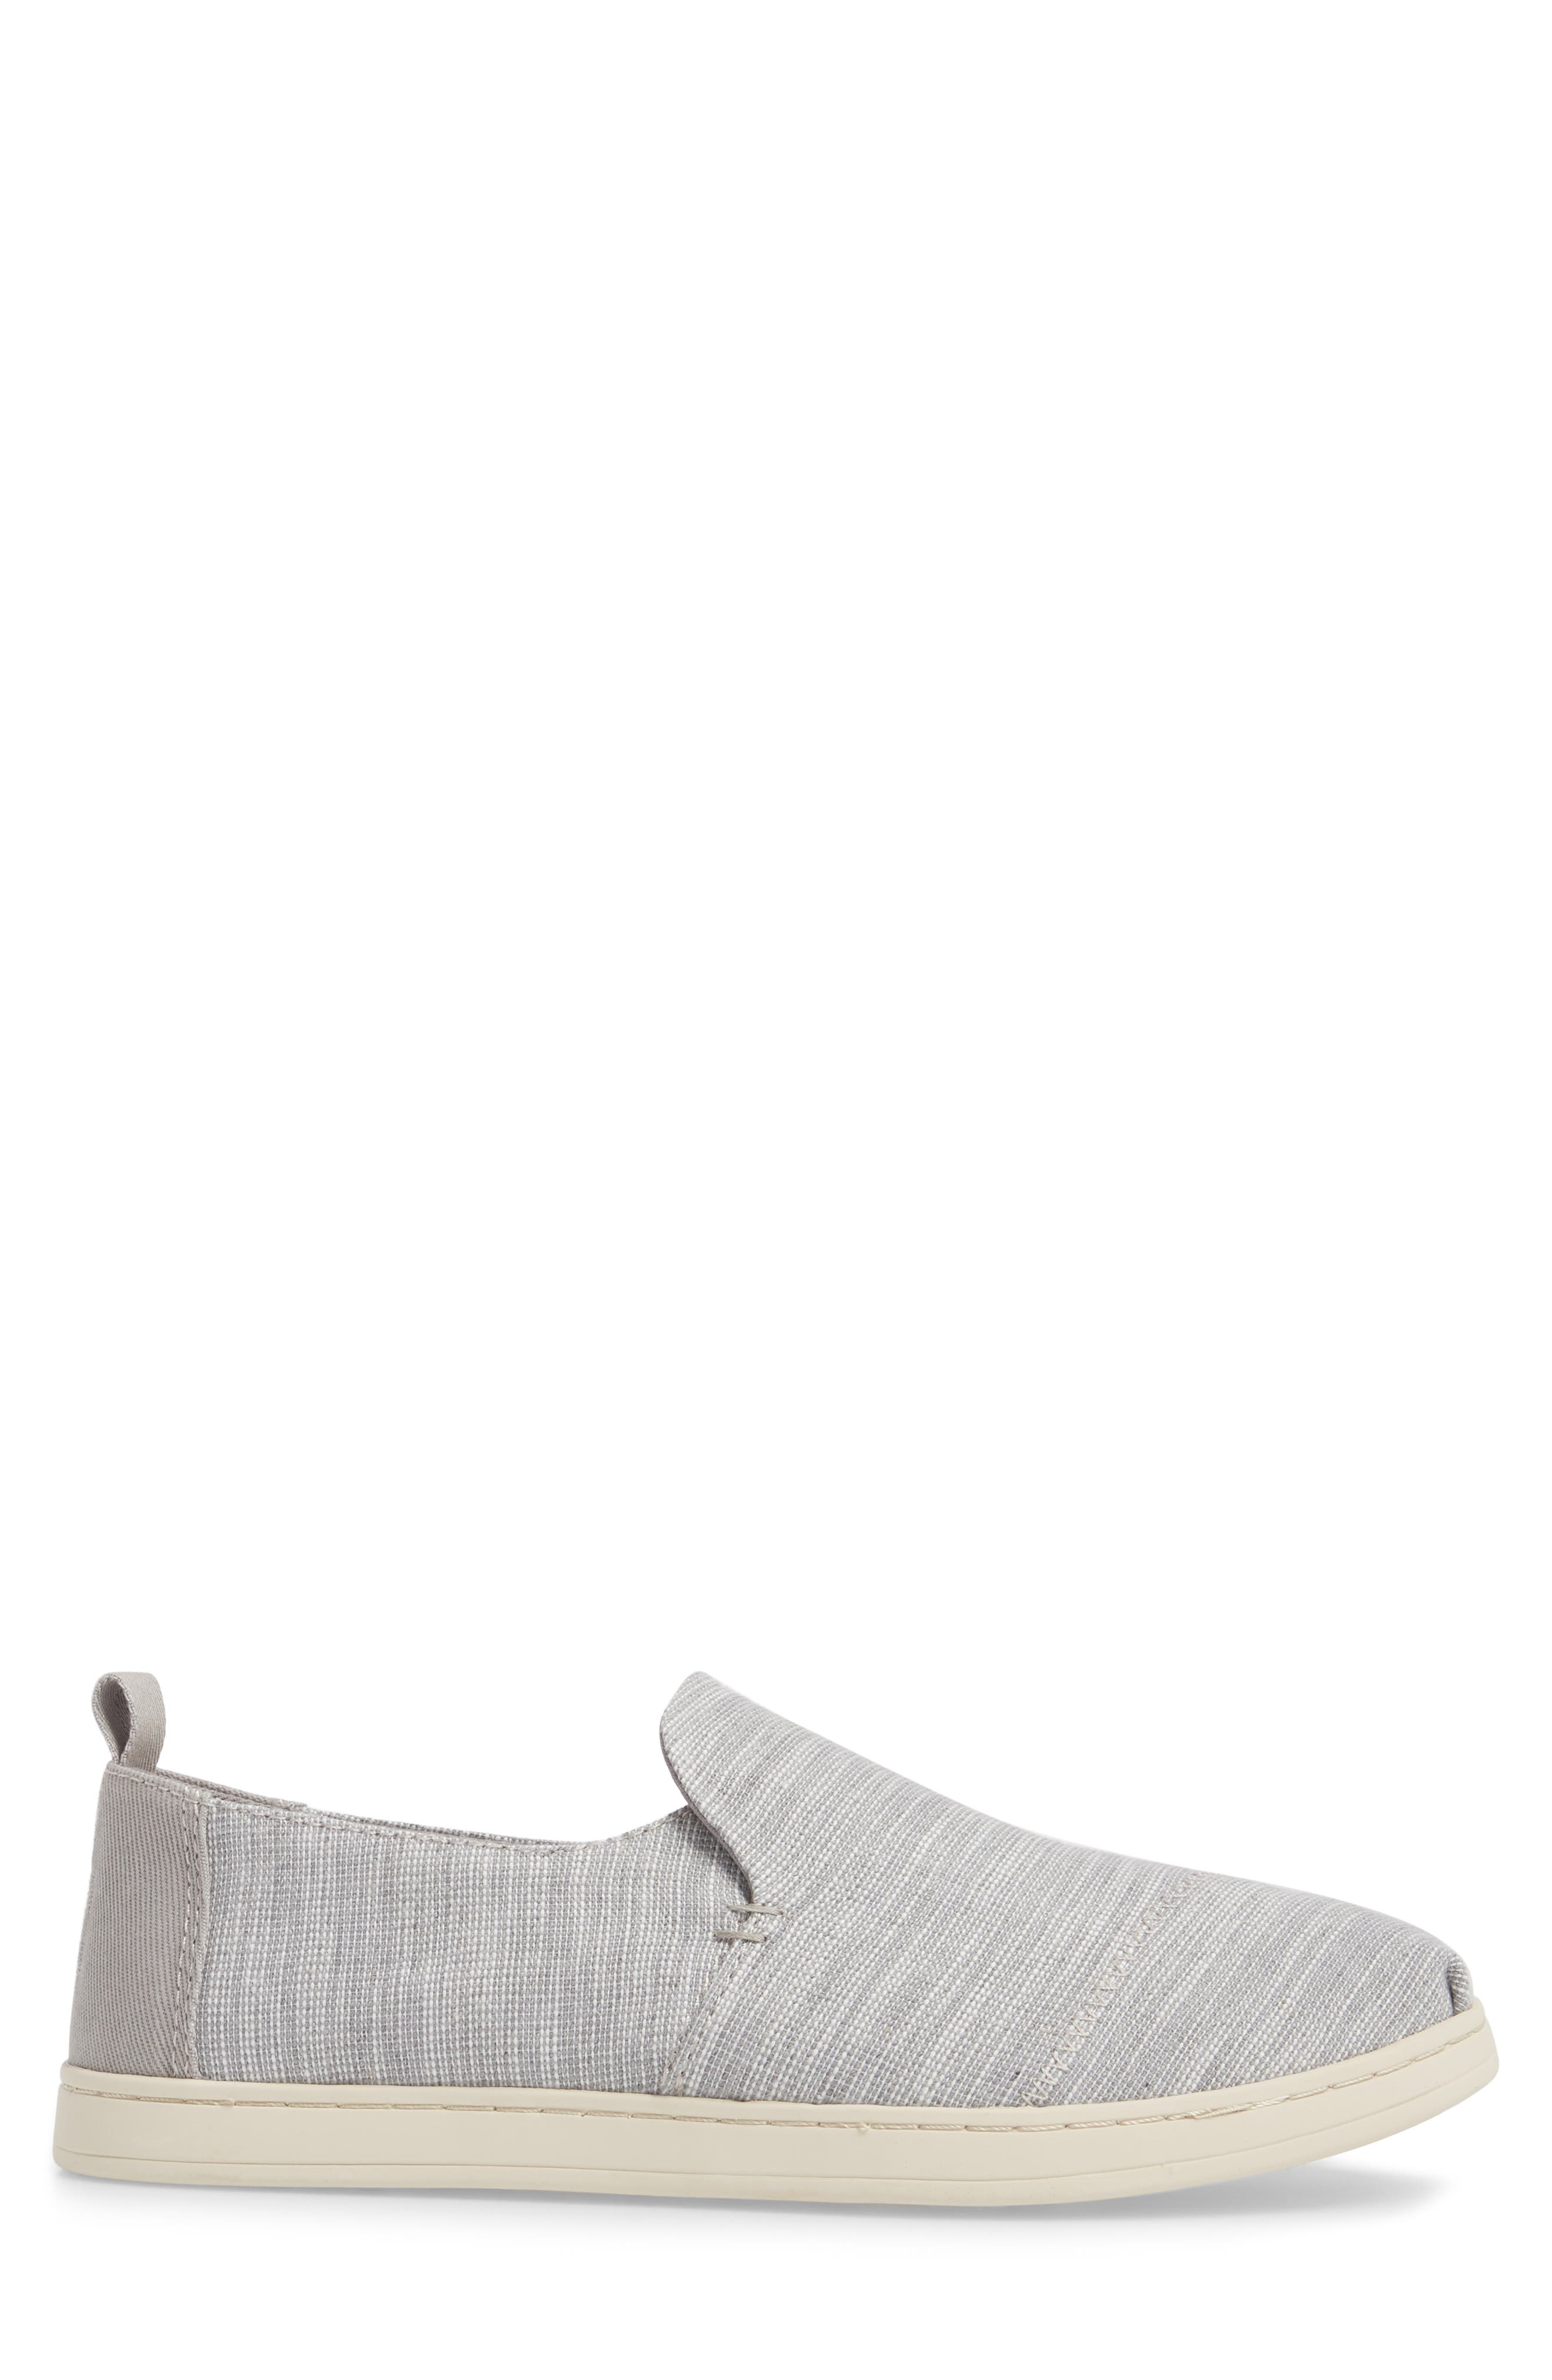 Deconstructed Alpargata Slip-On,                             Alternate thumbnail 3, color,                             Drizzle Striped Chambray